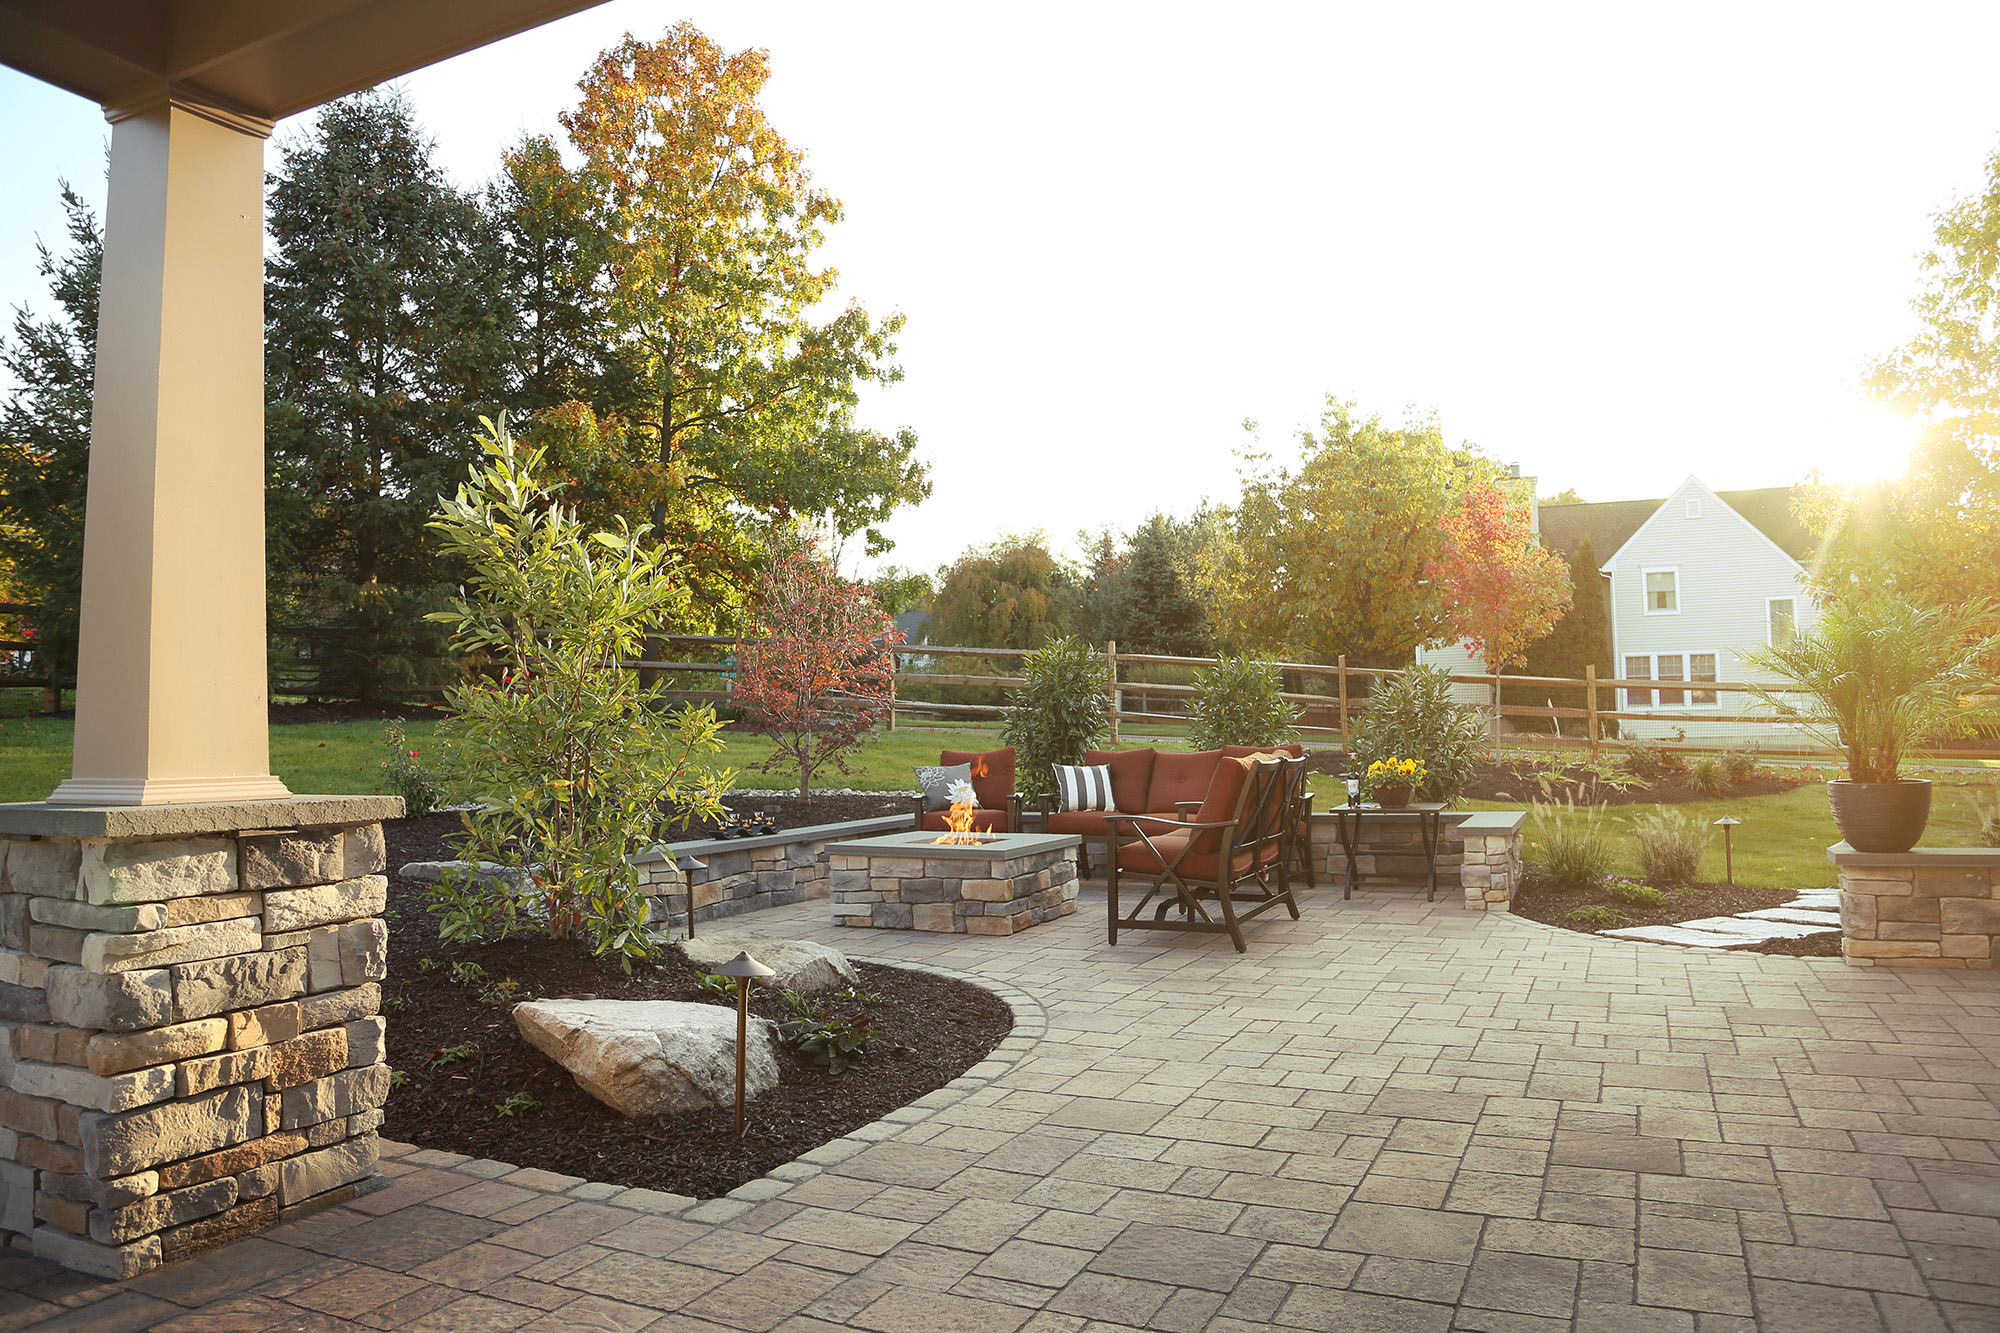 Including a natural gas fire pit into the patio provides a warm destination for the whole family to gather around and make memories.